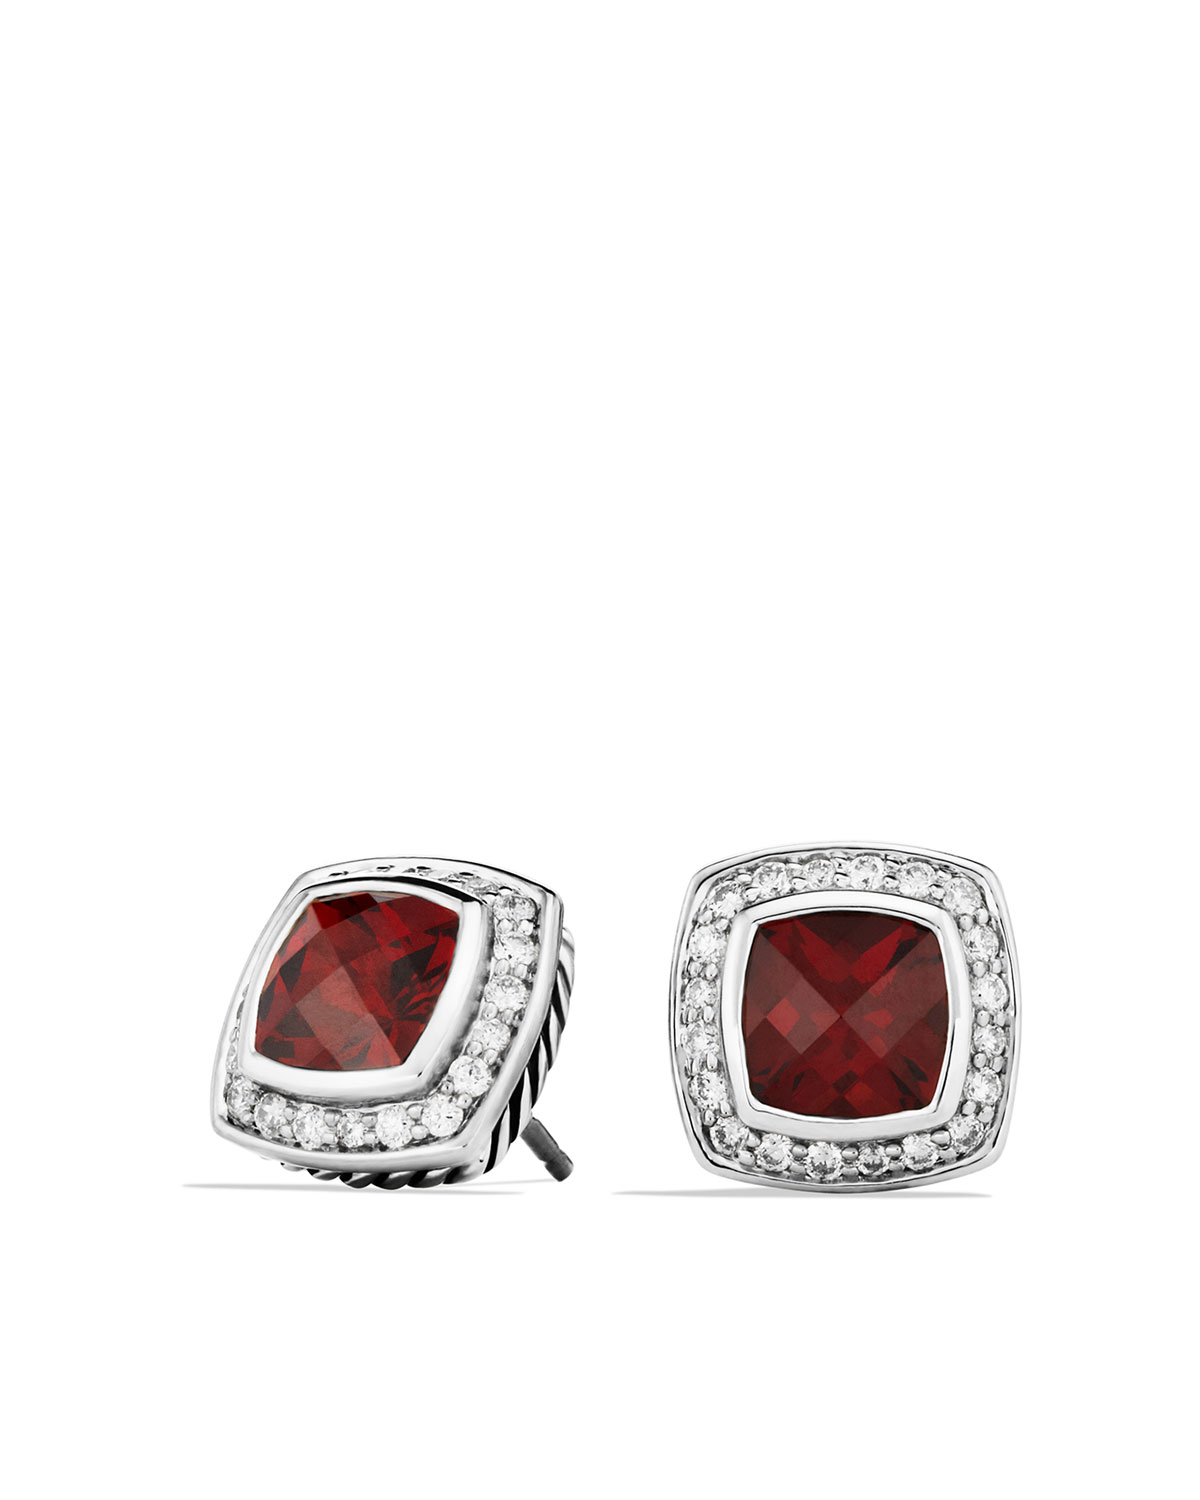 Petite Albion Earrings with Pyrope Garnet and Diamonds